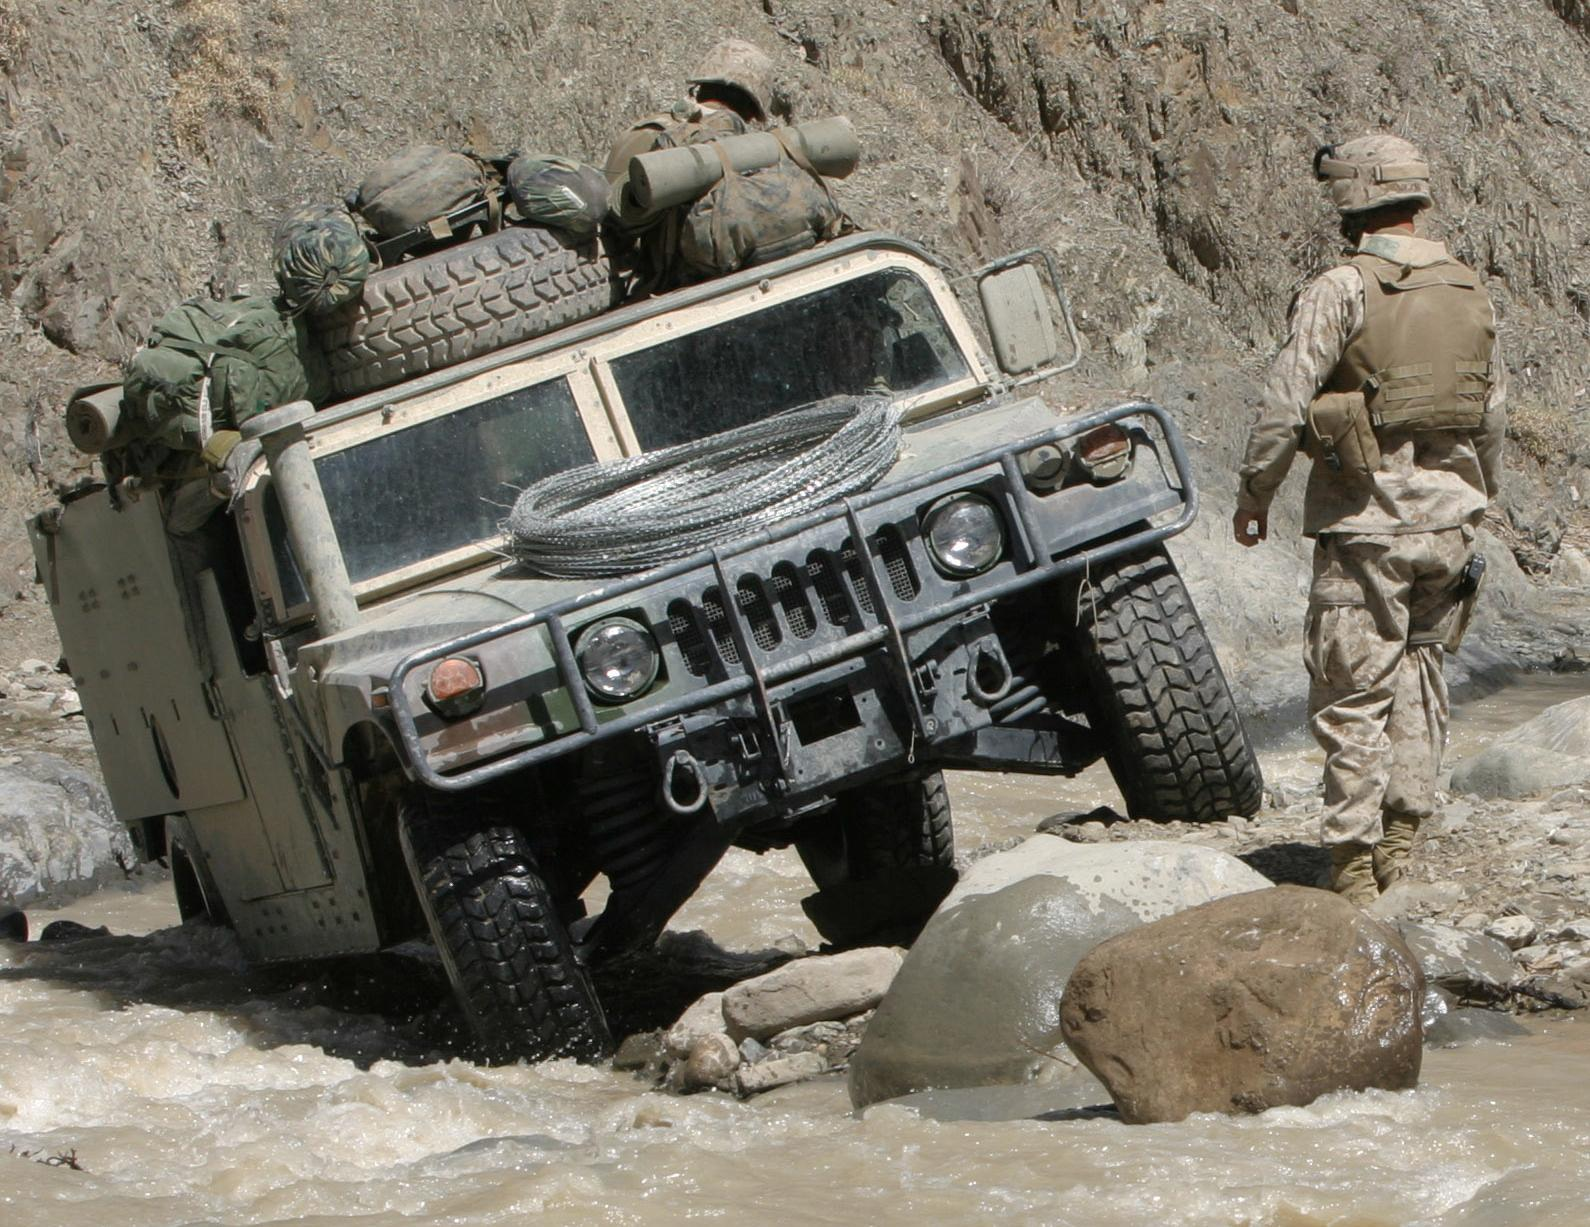 Architecture Branding Hummer Honours Military Heritage